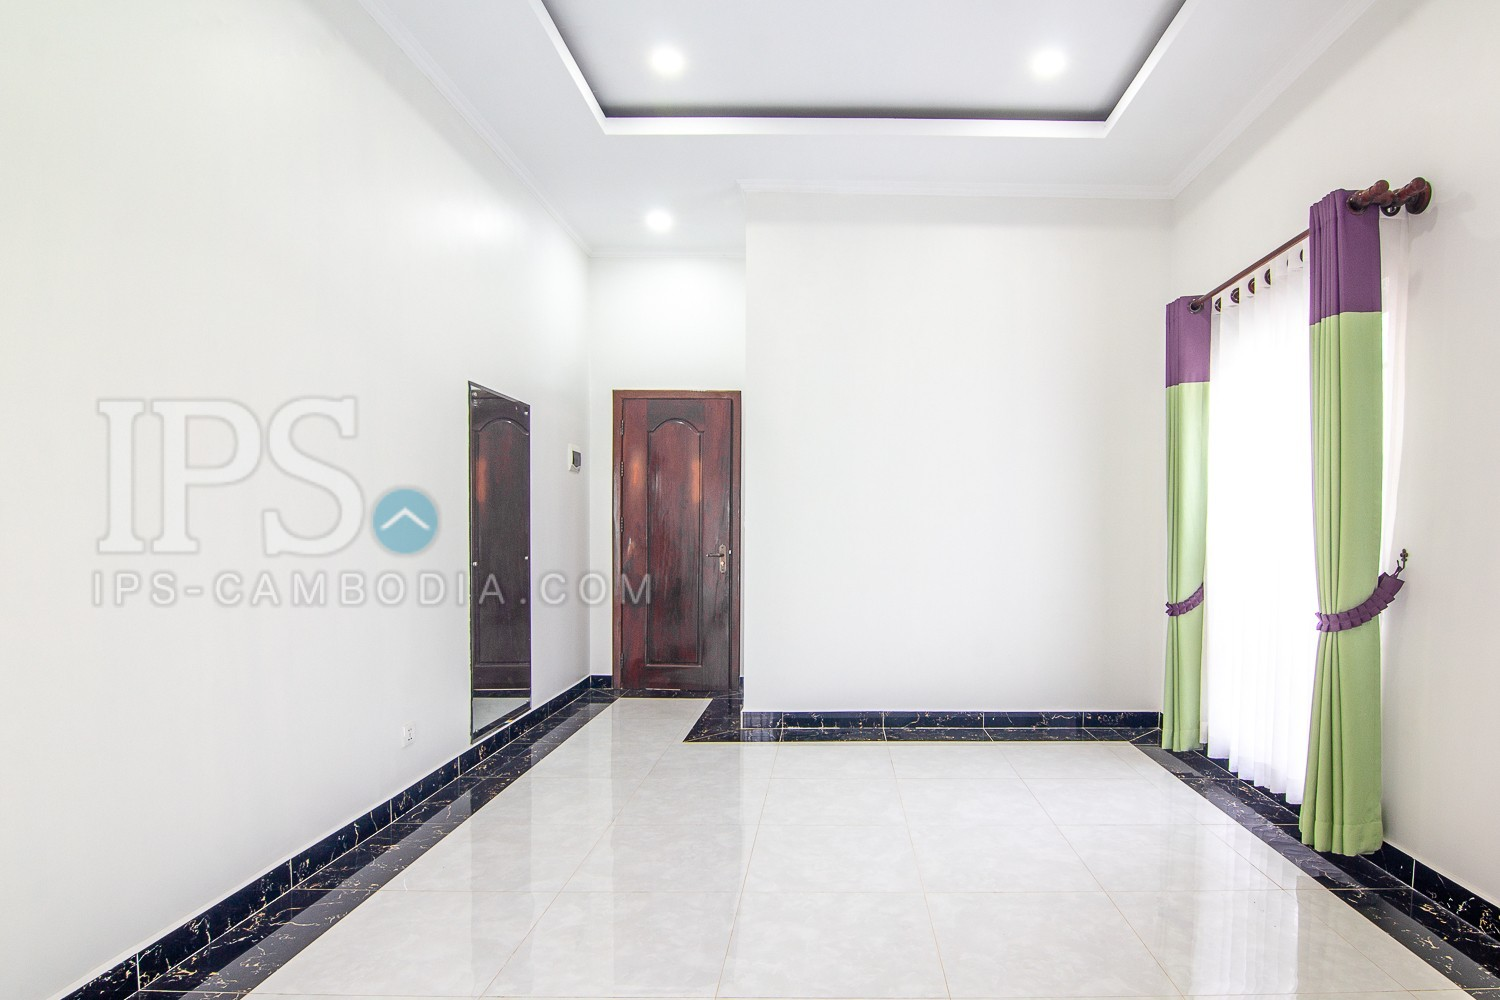 3 Bedroom House For Rent - Svay Thom, Siem Reap